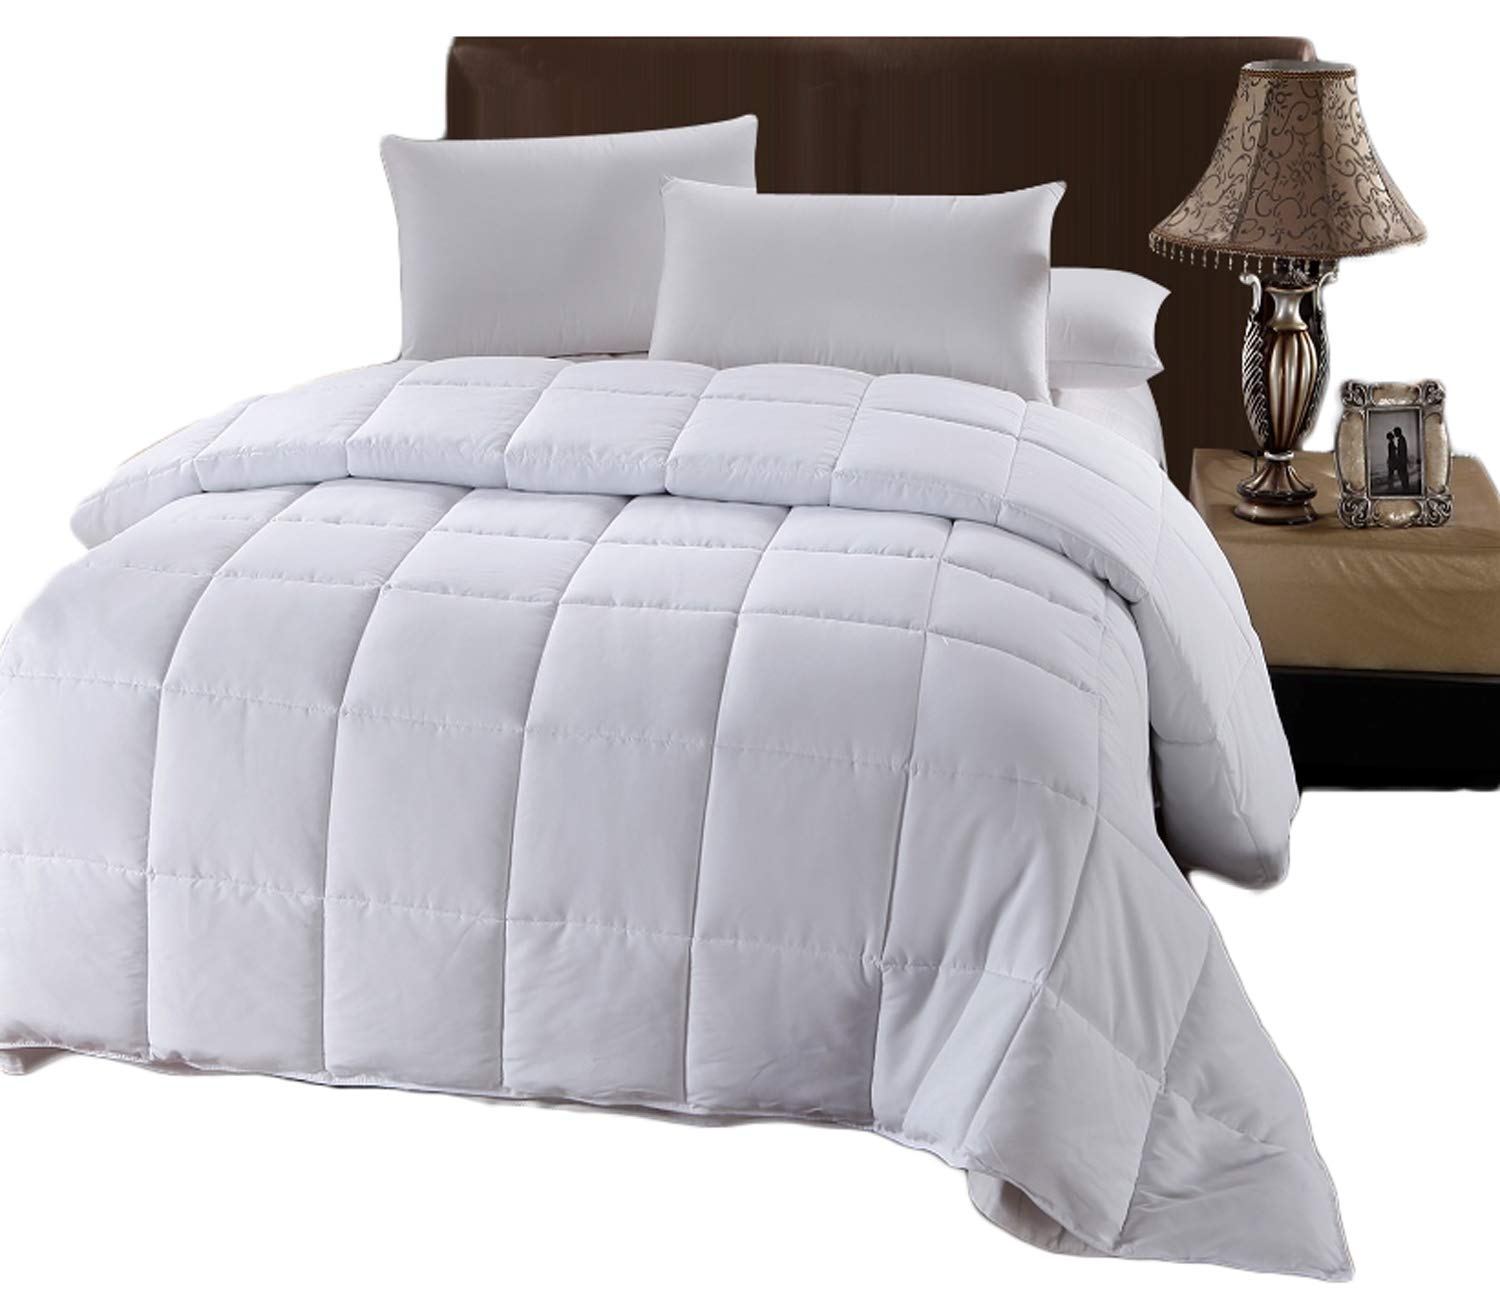 Royal Hotel's King / California-King Size Down-Alternative Comforter - Duvet Insert, 100% Down Alternative Fill